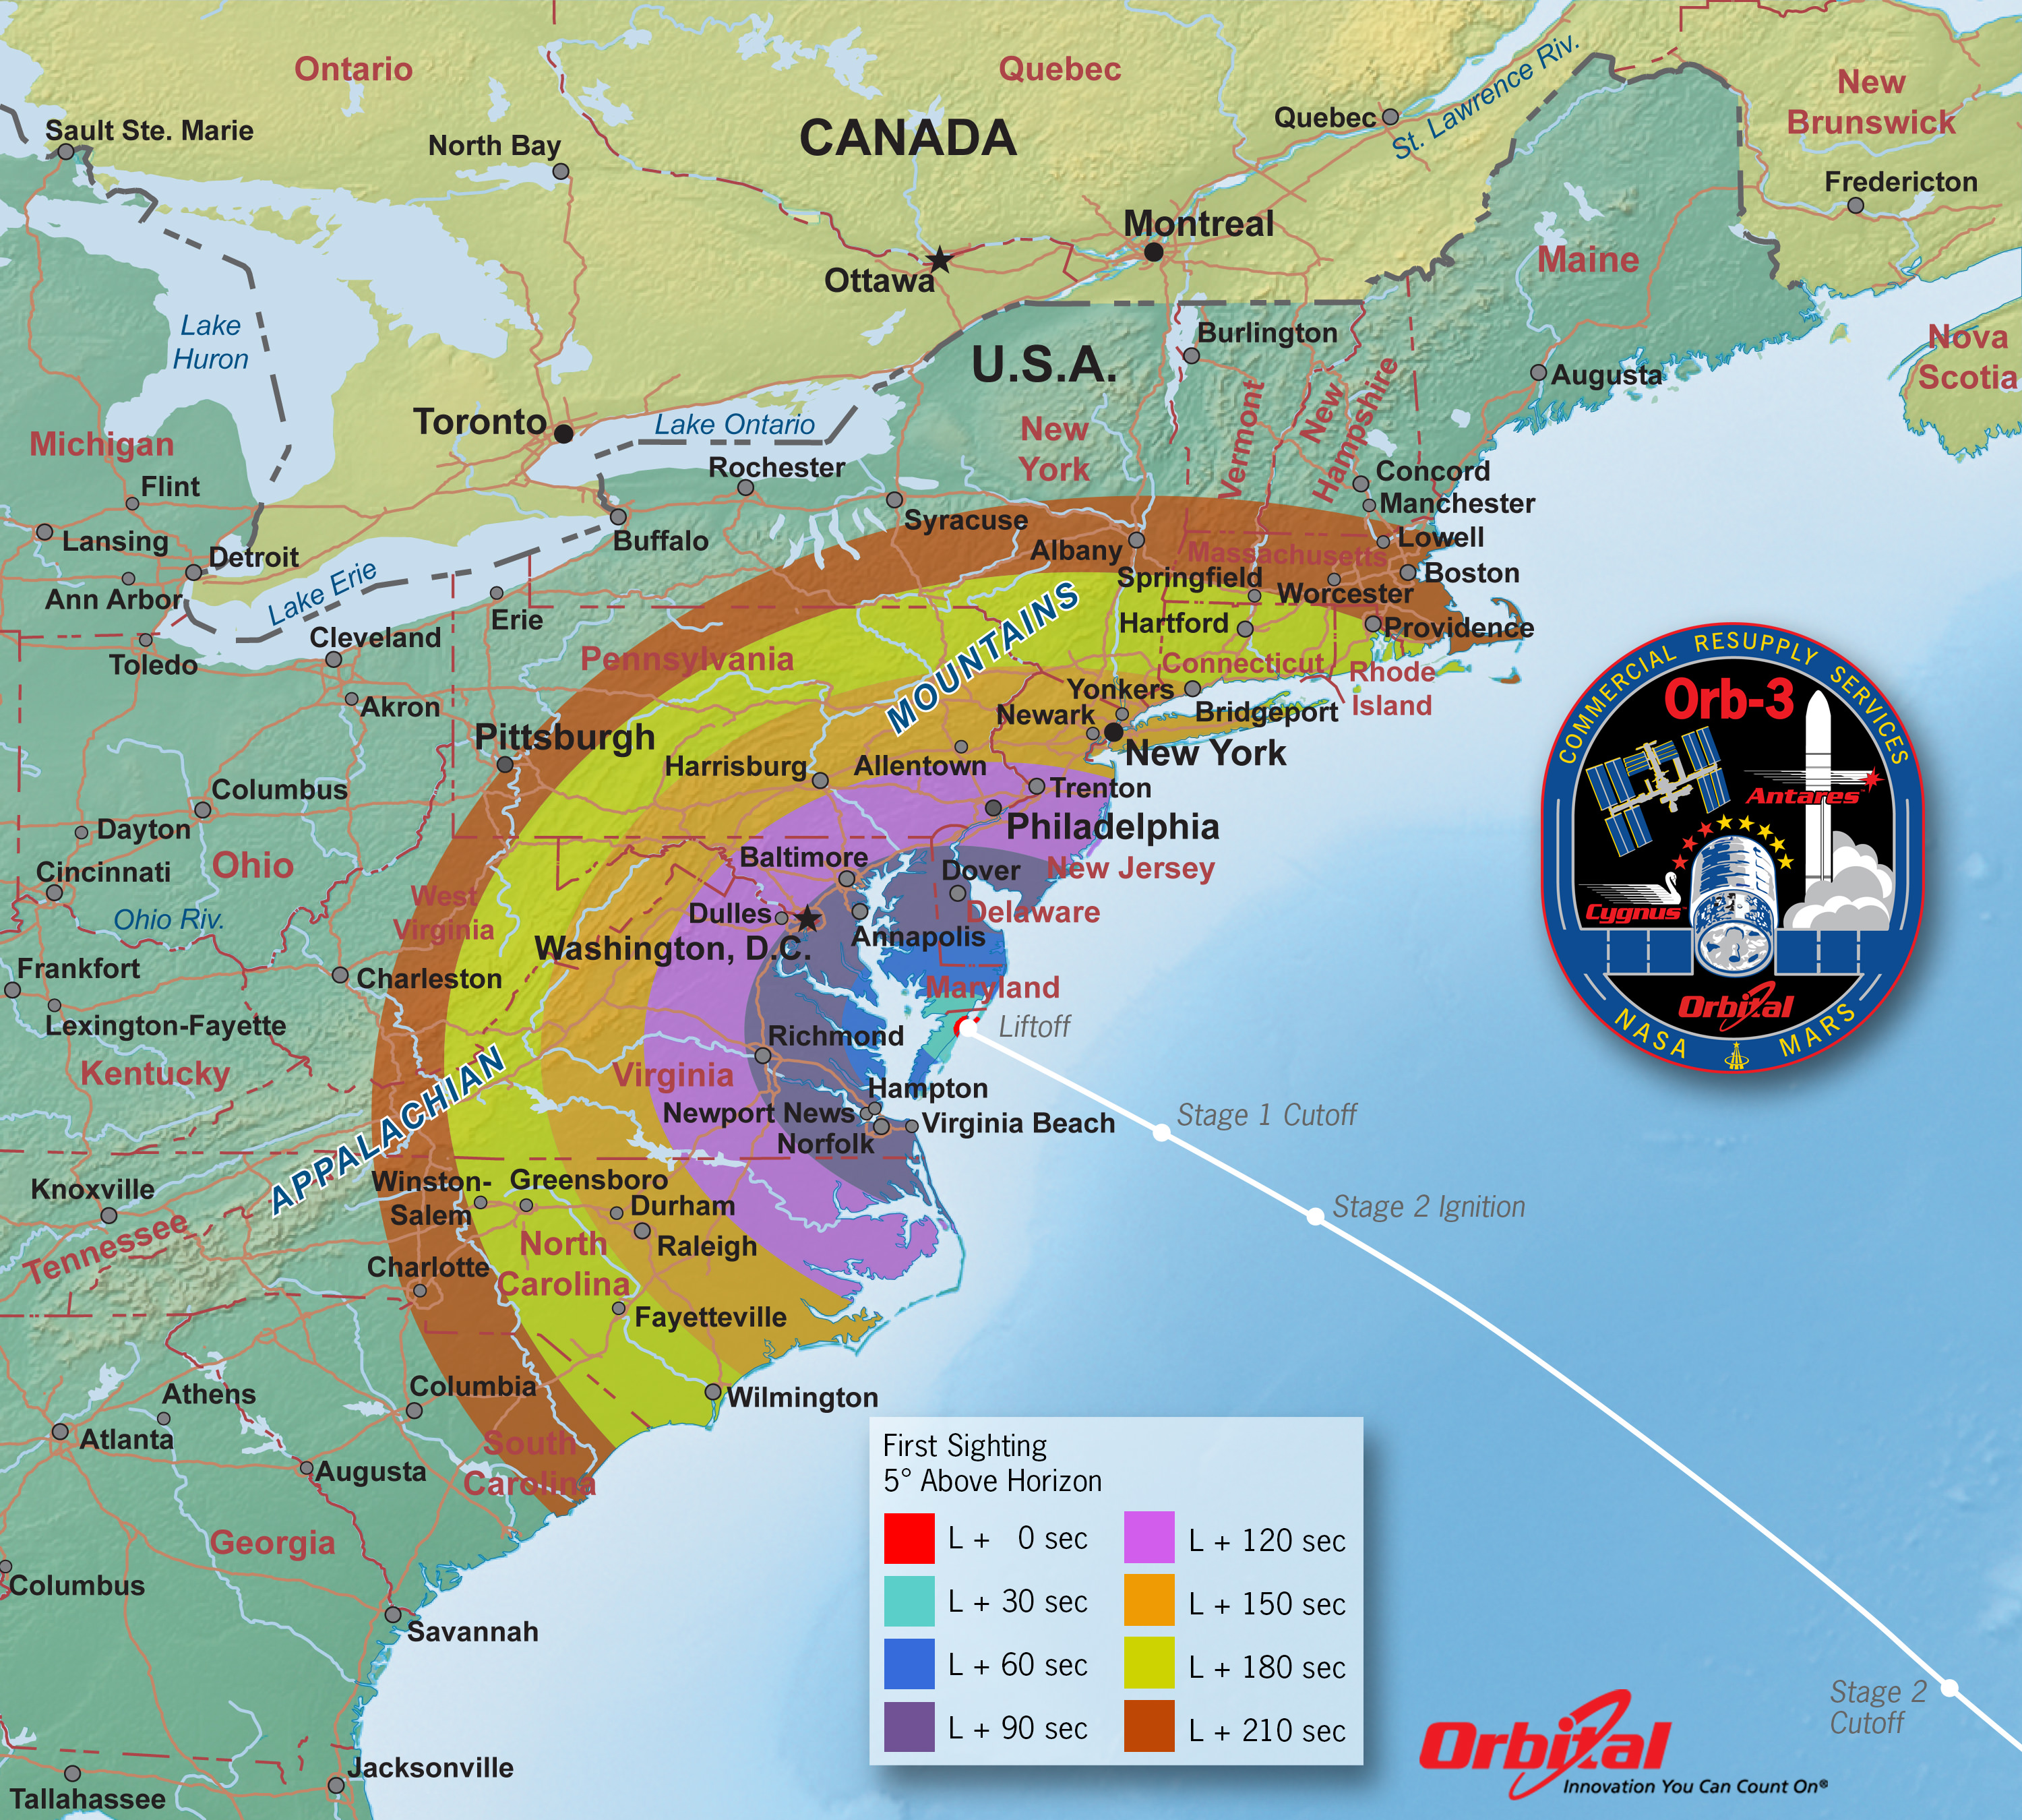 Orbital 3 Launch from NASA Wallops Island, VA on Oct. 27, 2014- Time of First Sighting Map.  This map shows the rough time at which you can first expect to see Antares after it is launched on Oct. 27, 2014. It represents the time at which the rocket will reach 5 degrees above the horizon and varies depending on your location . We have selected 5 degrees as it is unlikely that you'll be able to view the rocket when it is below 5 degrees due to buildings, vegetation, and other terrain features. However, depending on your local conditions the actual time you see the rocket may be earlier or later. As an example, using this map when observing from Washington, DC shows that Antares will reach 5 degrees above the horizon approximately 117 seconds after launch (L + 117 sec).   Credit: Orbital Sciences